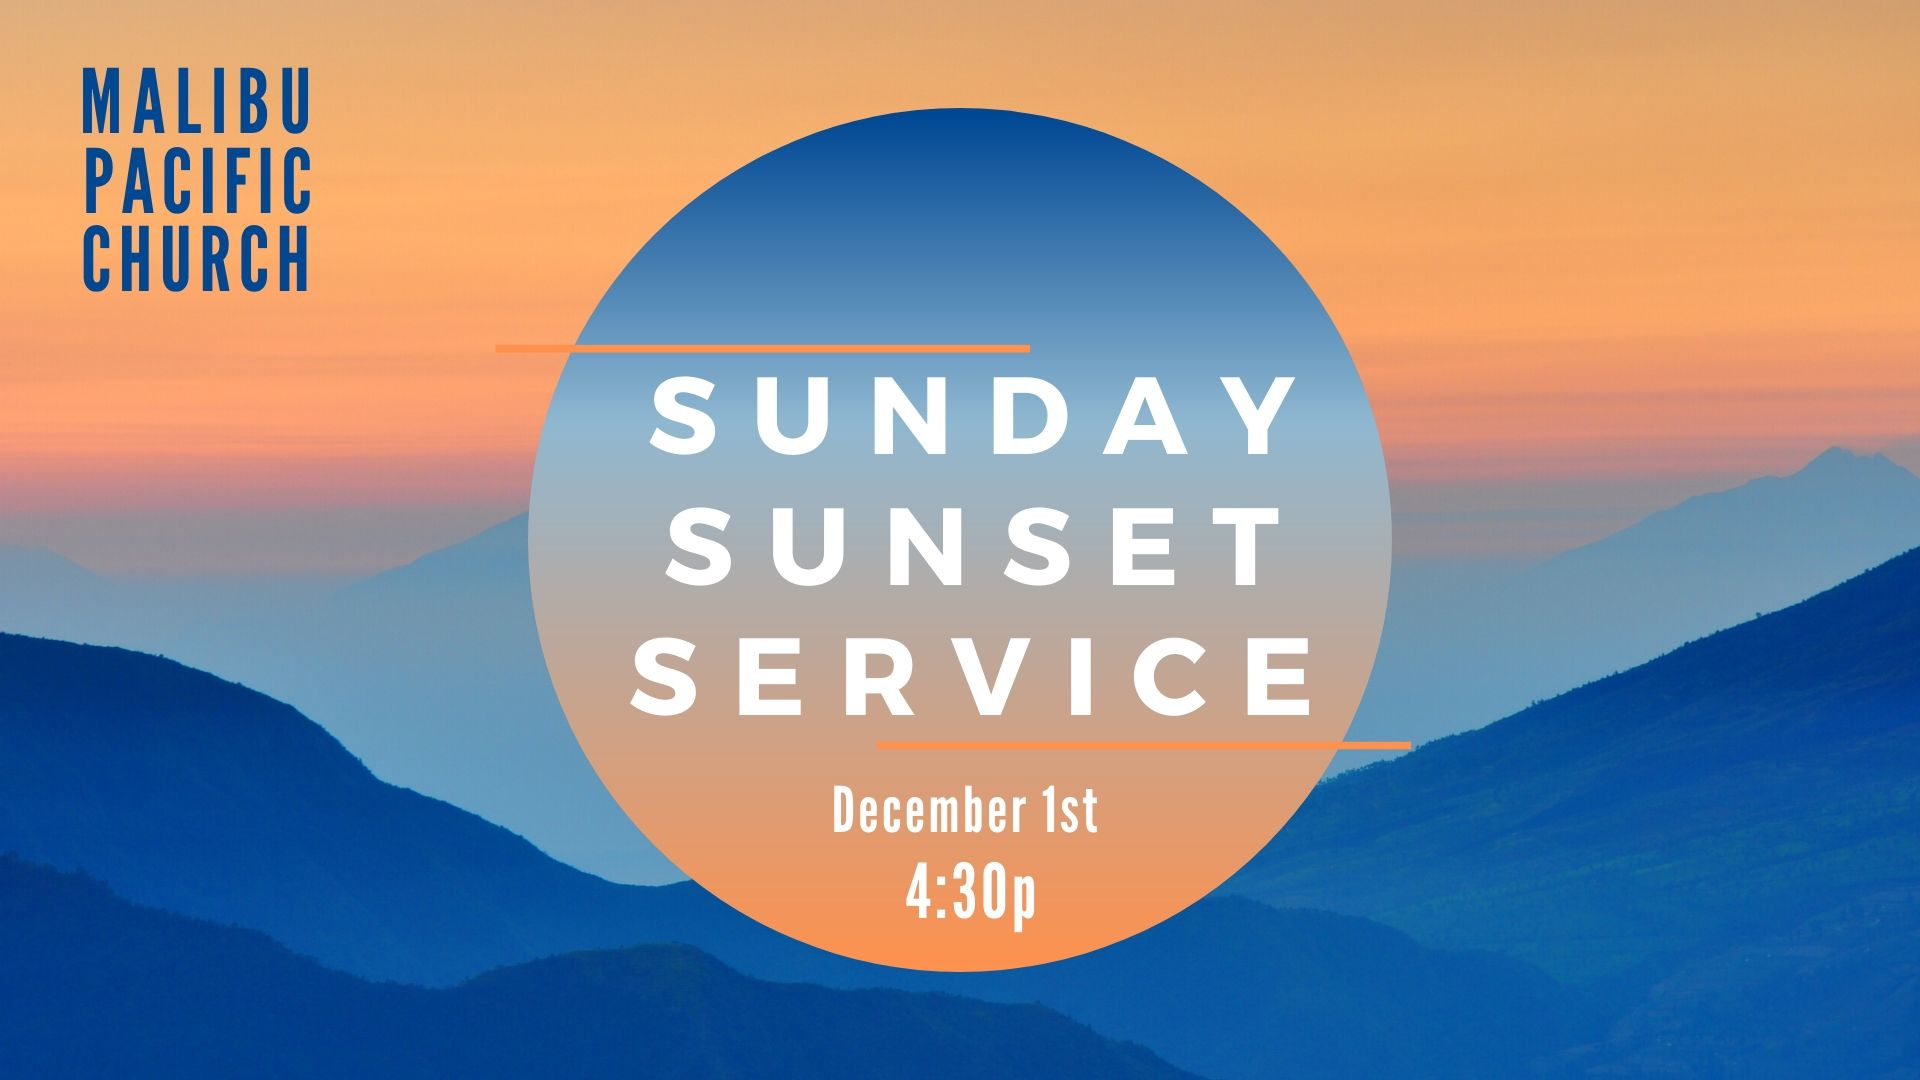 Malibu pacific church Sunset Service Presentation image